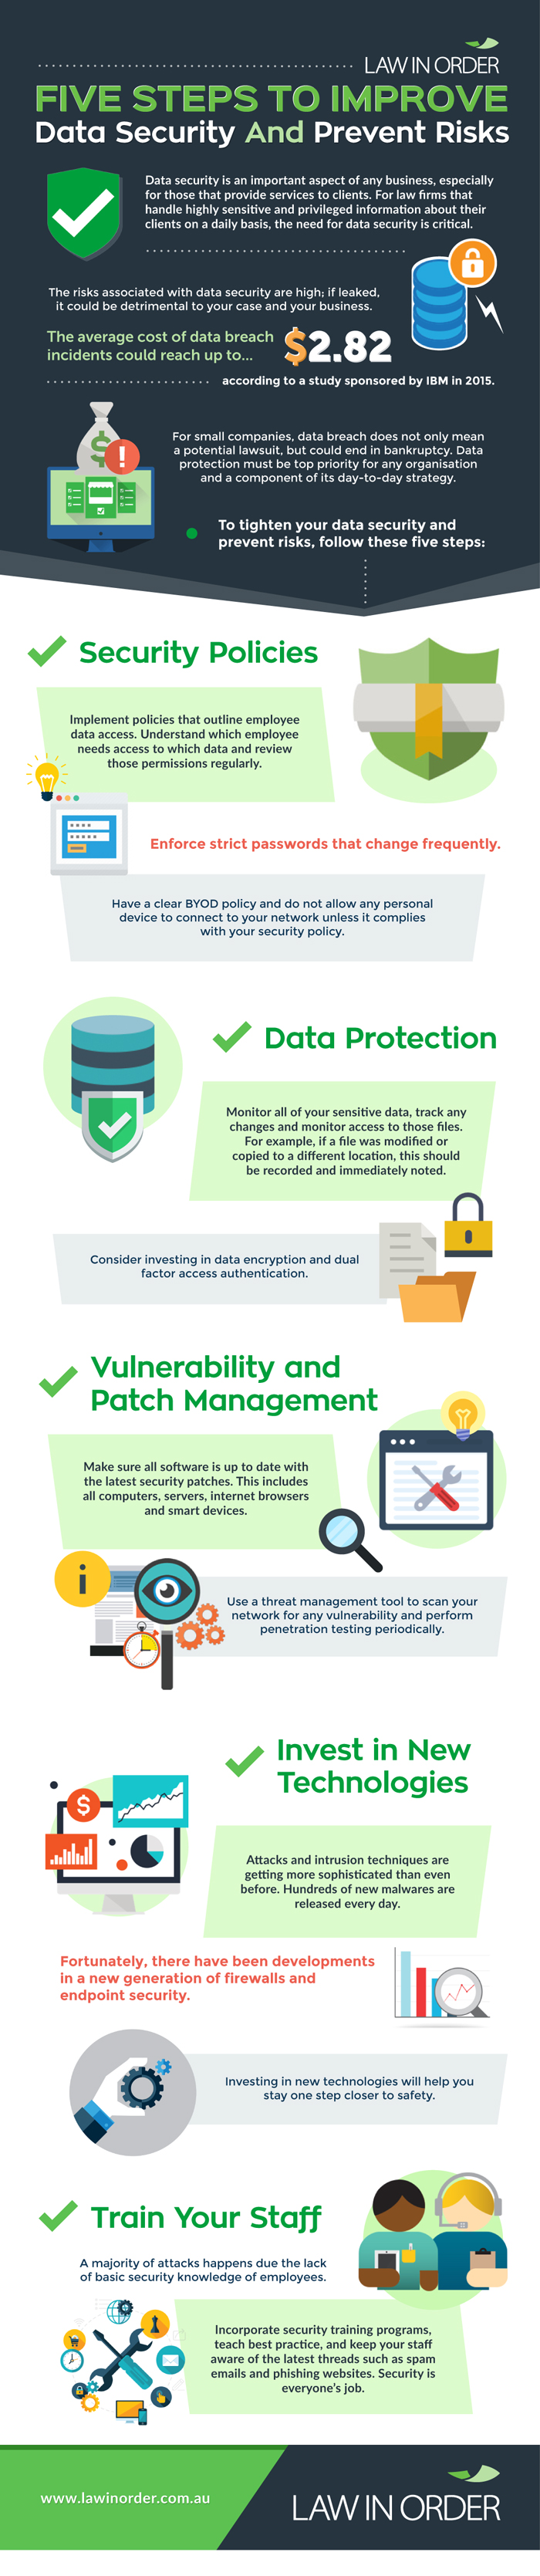 Five-Steps-To-Improve-Data-Security-And-Prevent-Risks.jpg-1